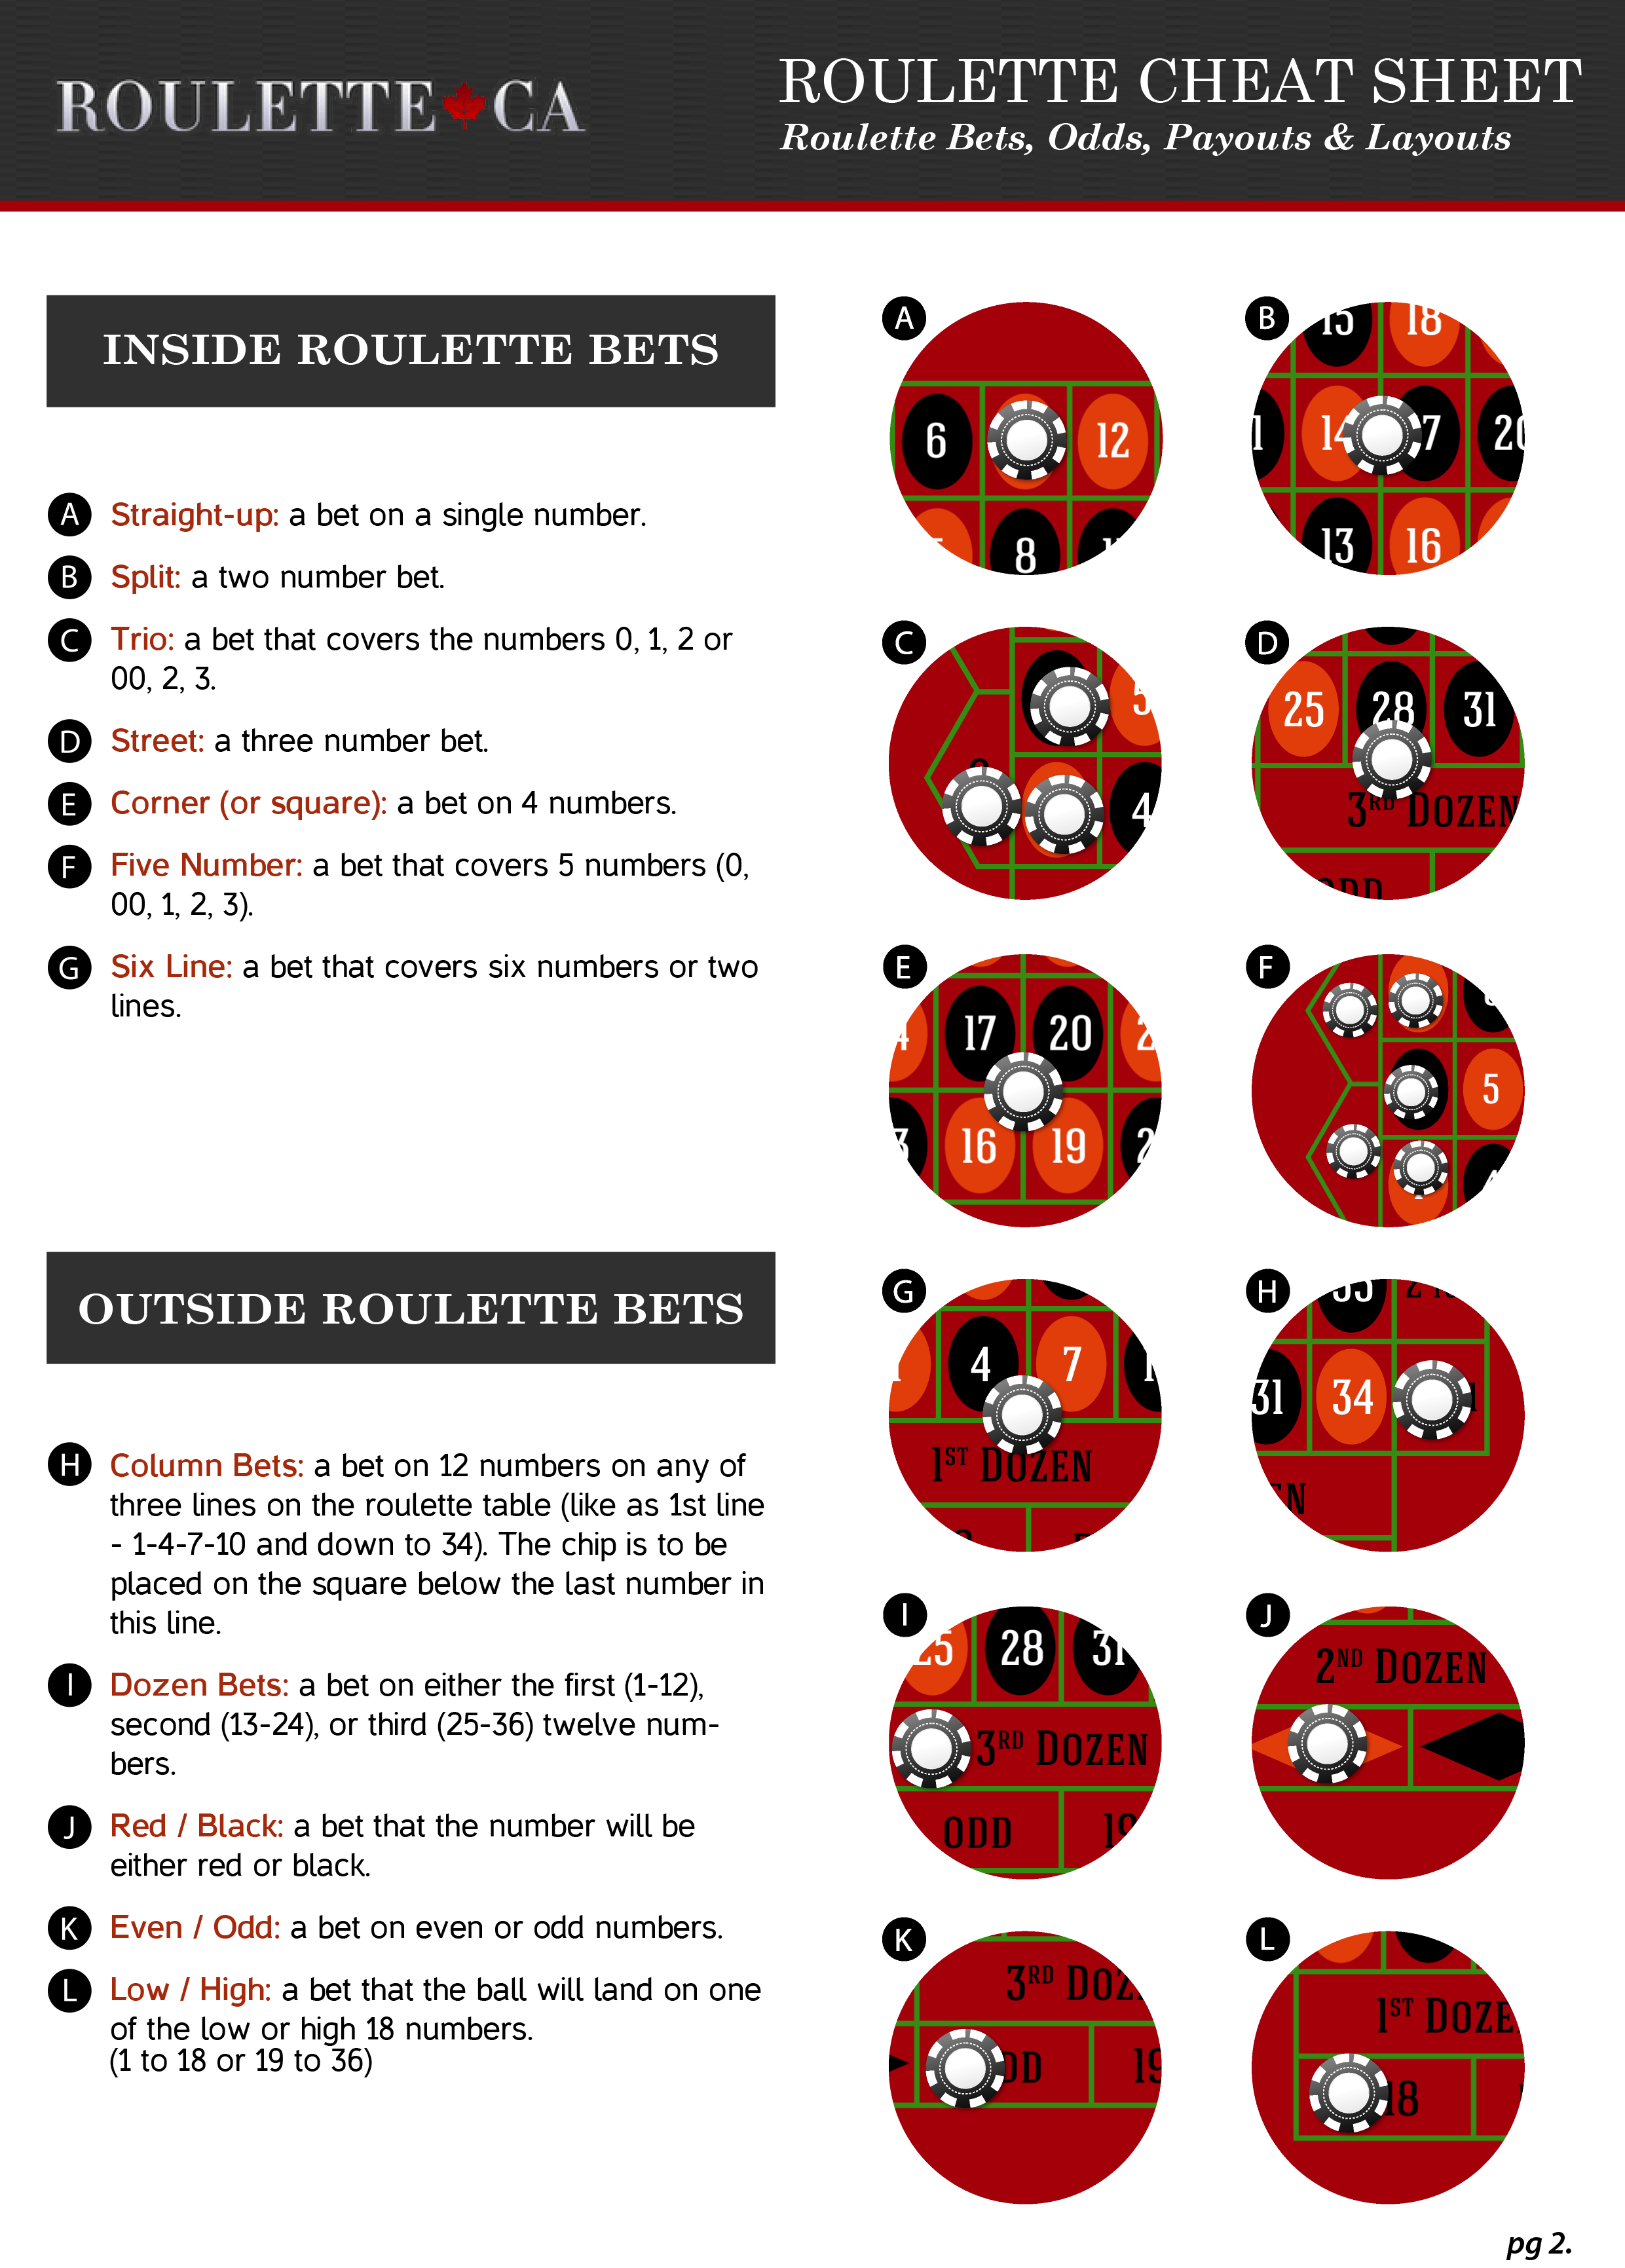 Roulette Bets Guide - Cheat Sheet